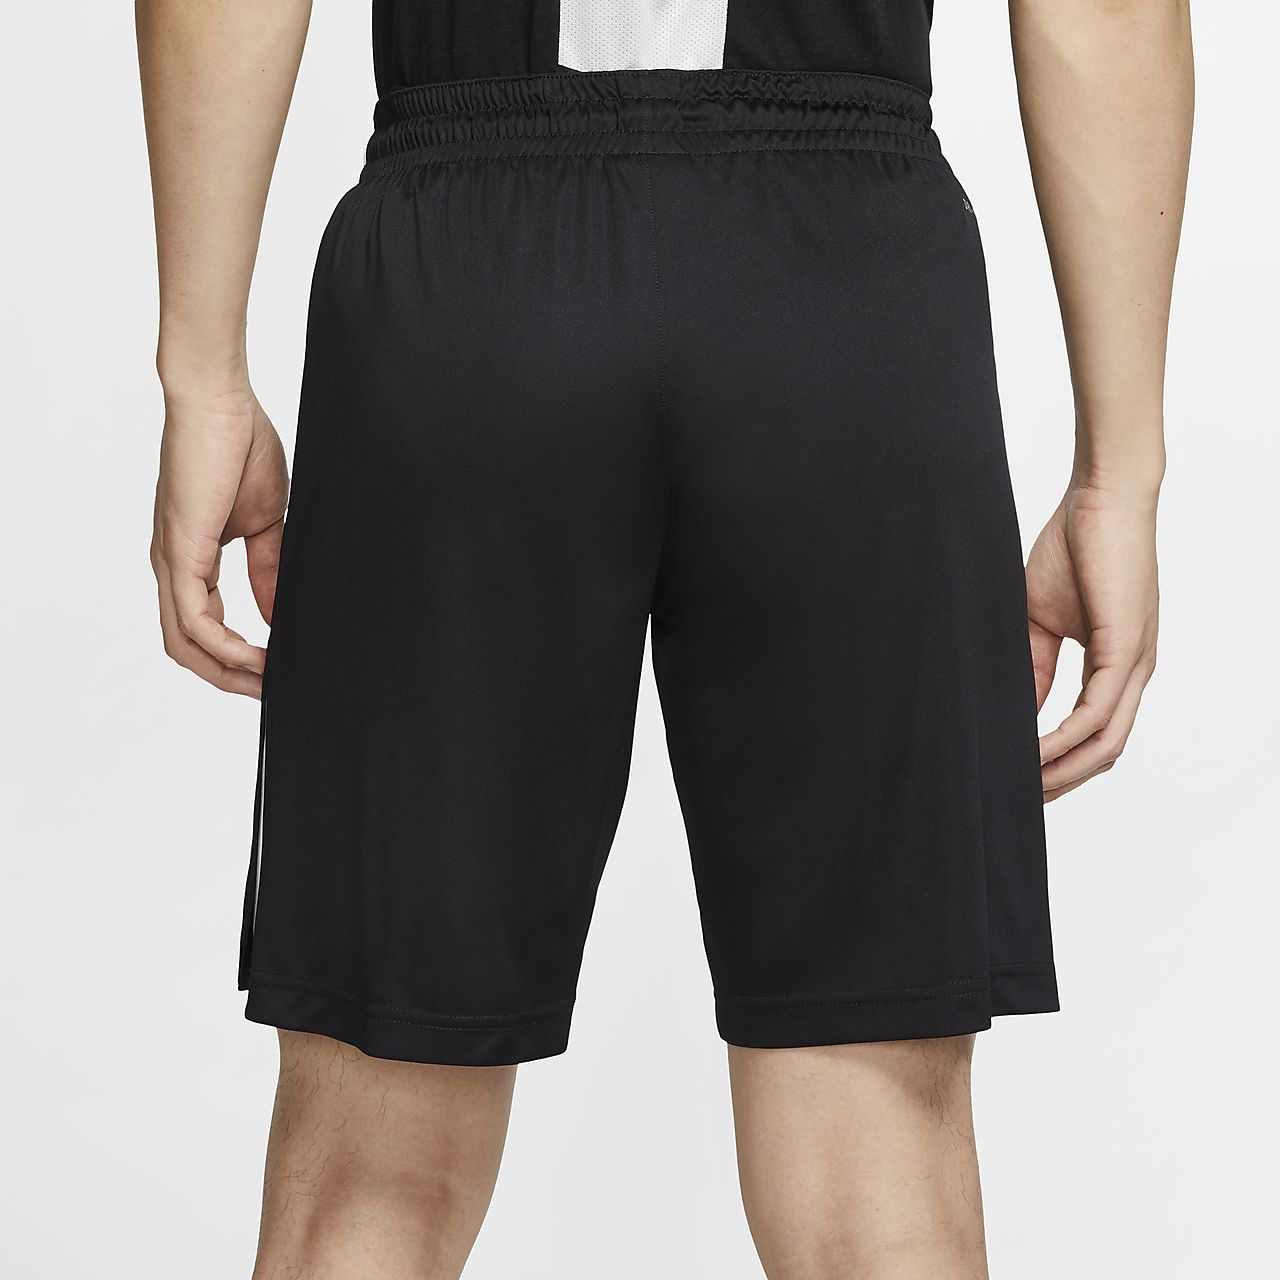 00f7eac7ed7721 Jordan Dri-FIT 23 Alpha Men s Training Shorts. Nike.com